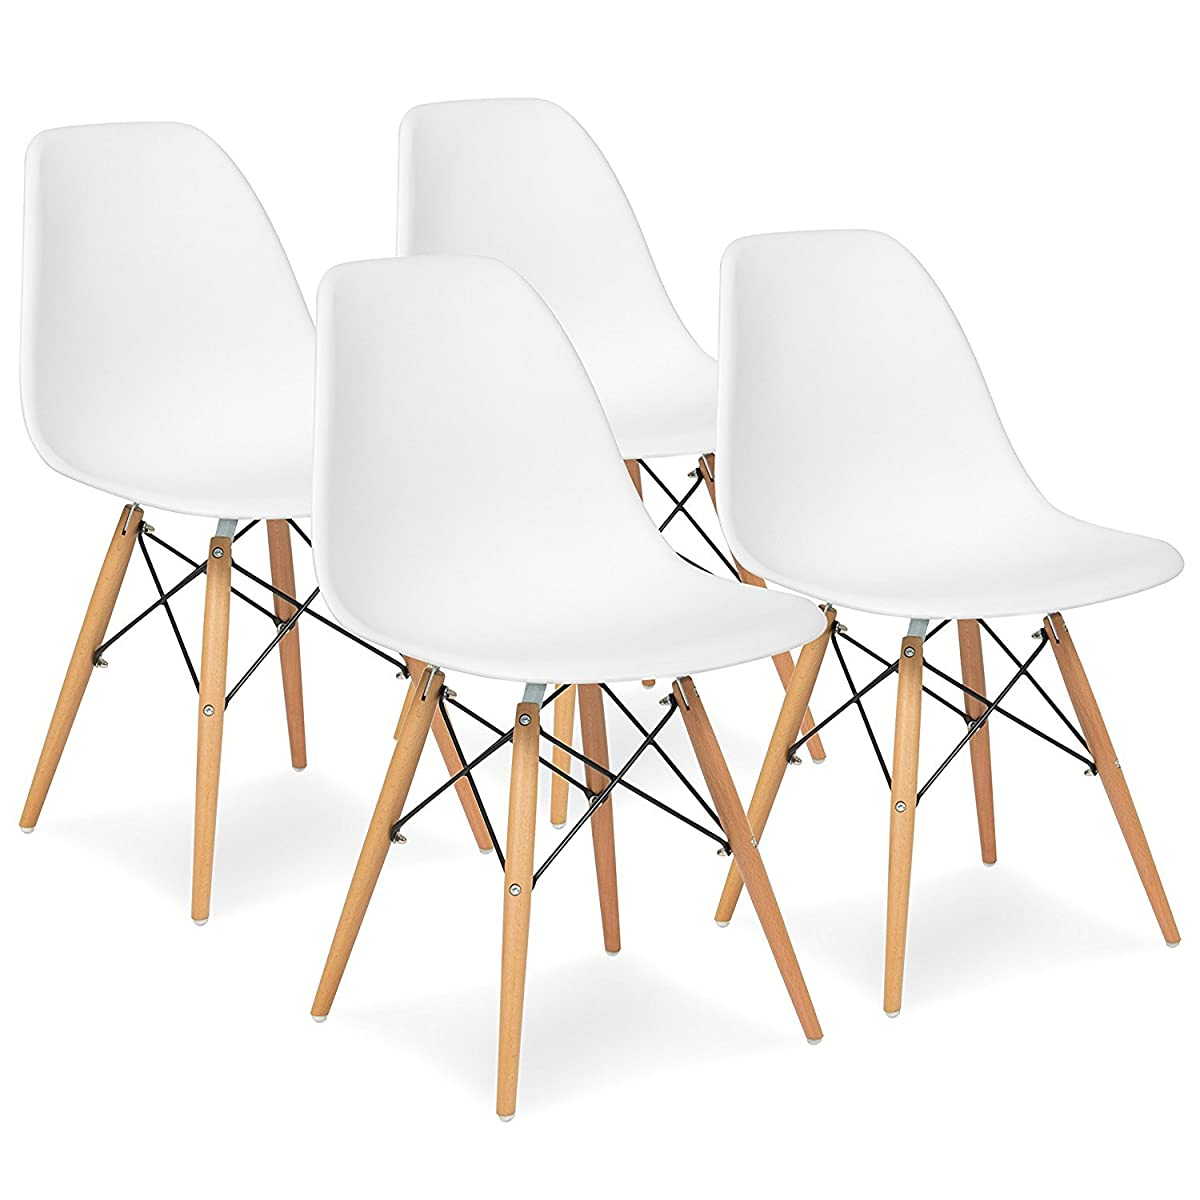 Purzest Dining Room Chairs Set of 4,Mid Century Modern Dining Room Chairs with Natural Legs- Eames Style Chair, White,